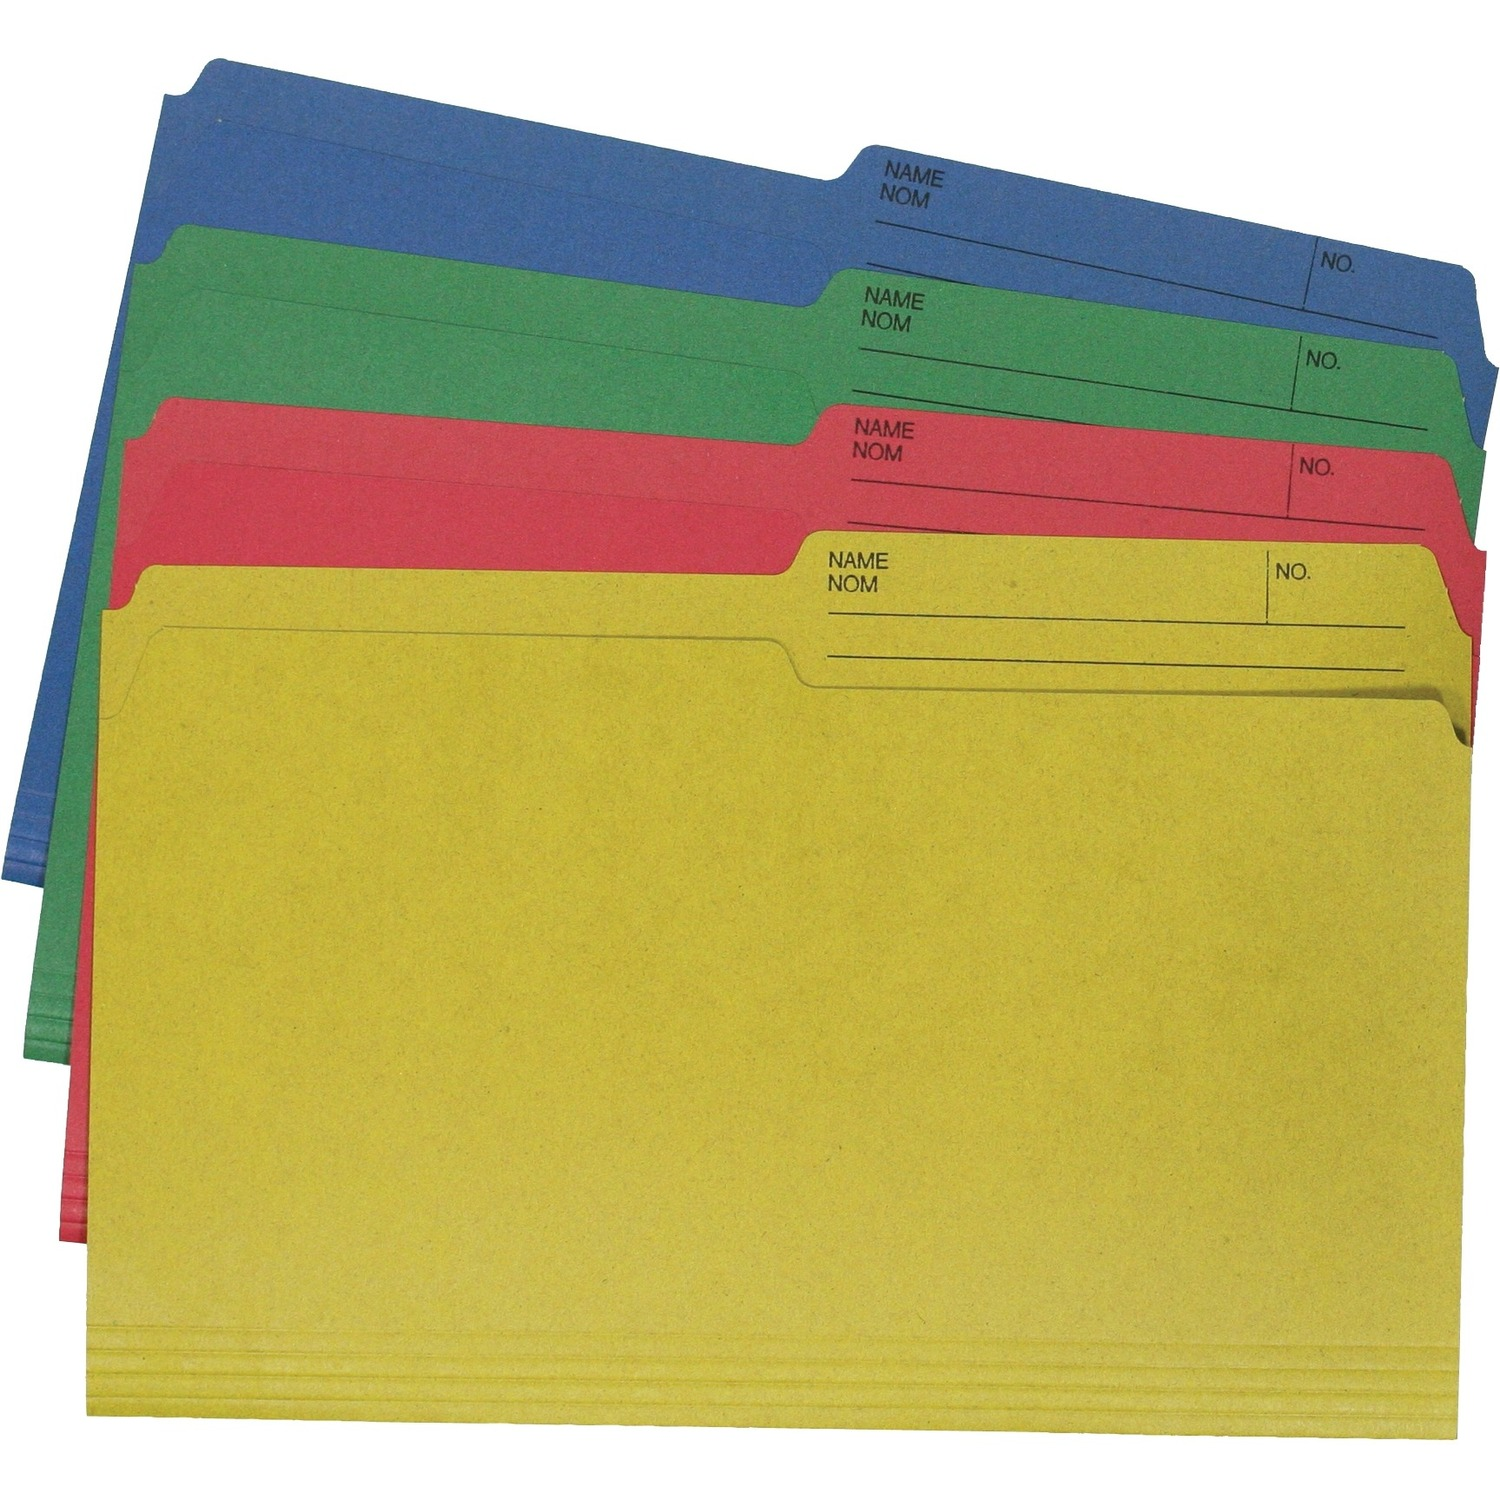 Ocean Stationery and Office Supplies :: Office Supplies :: Filing